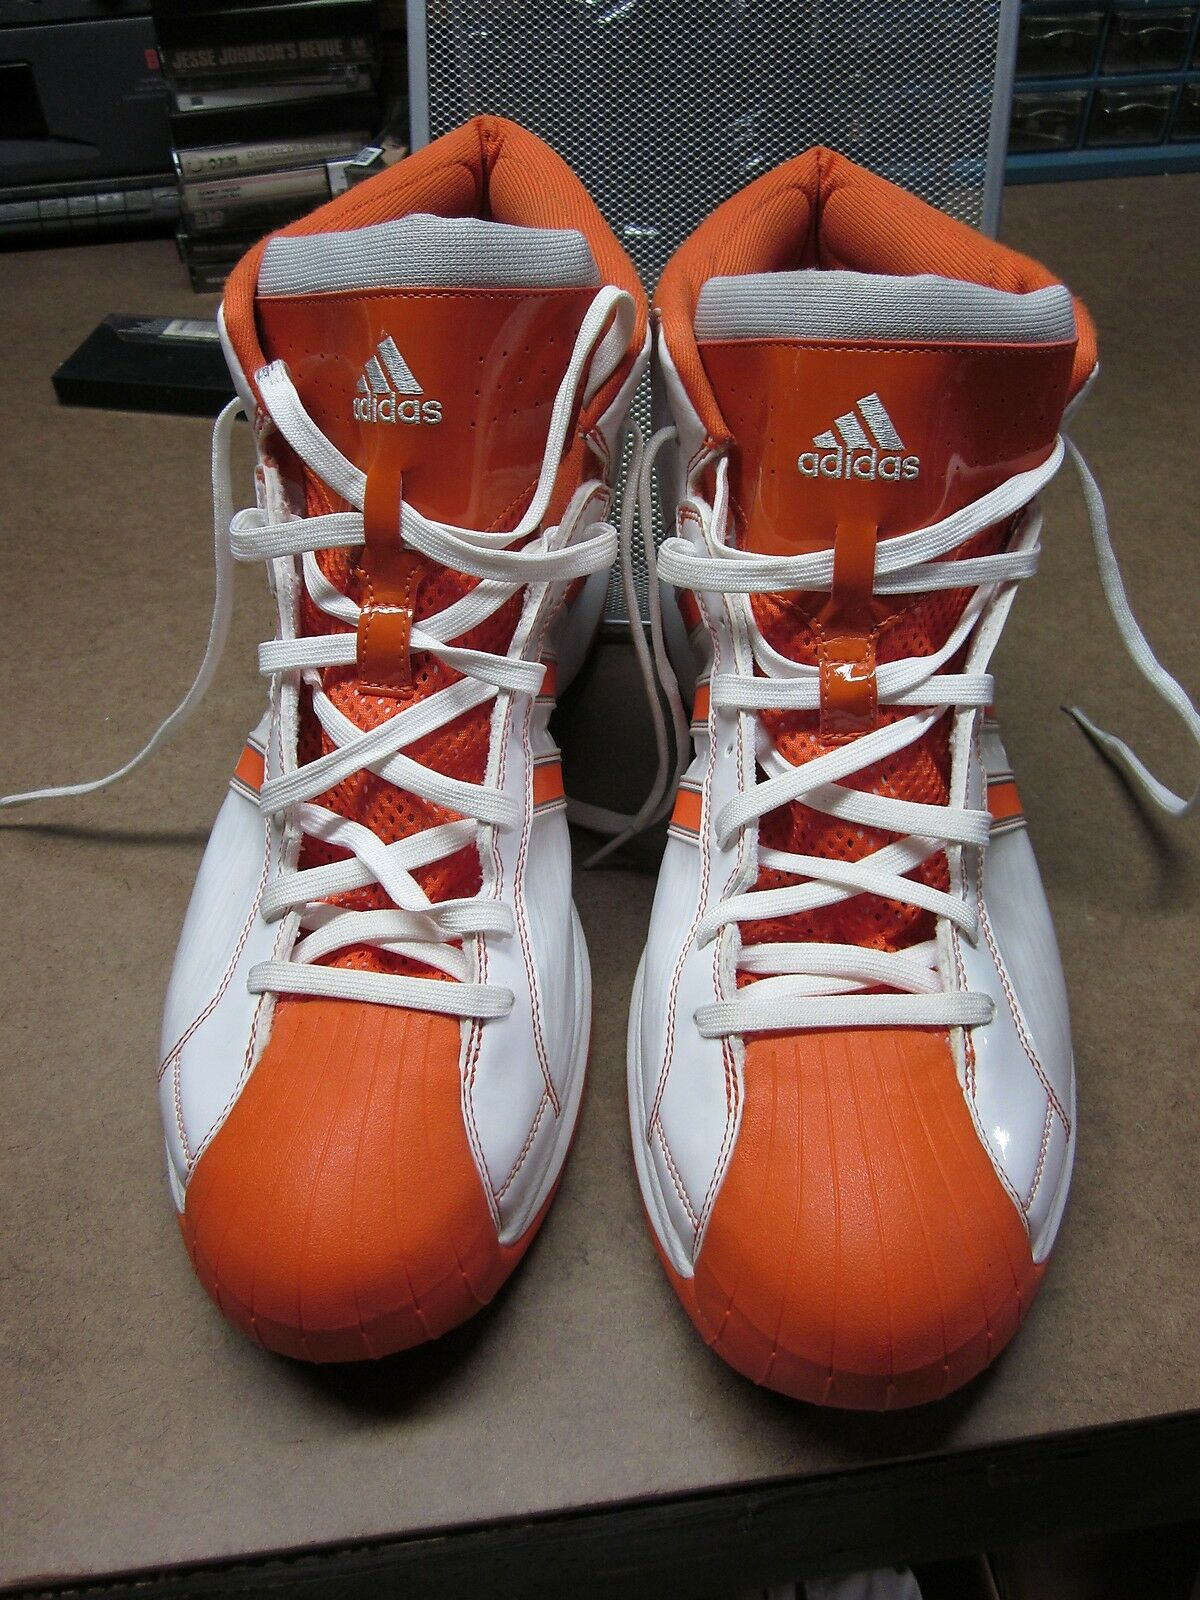 ADIDAS orange retro schuhe high top OG tennis schuhe retro 2008 old-school basketball Größe 18 e8dd01